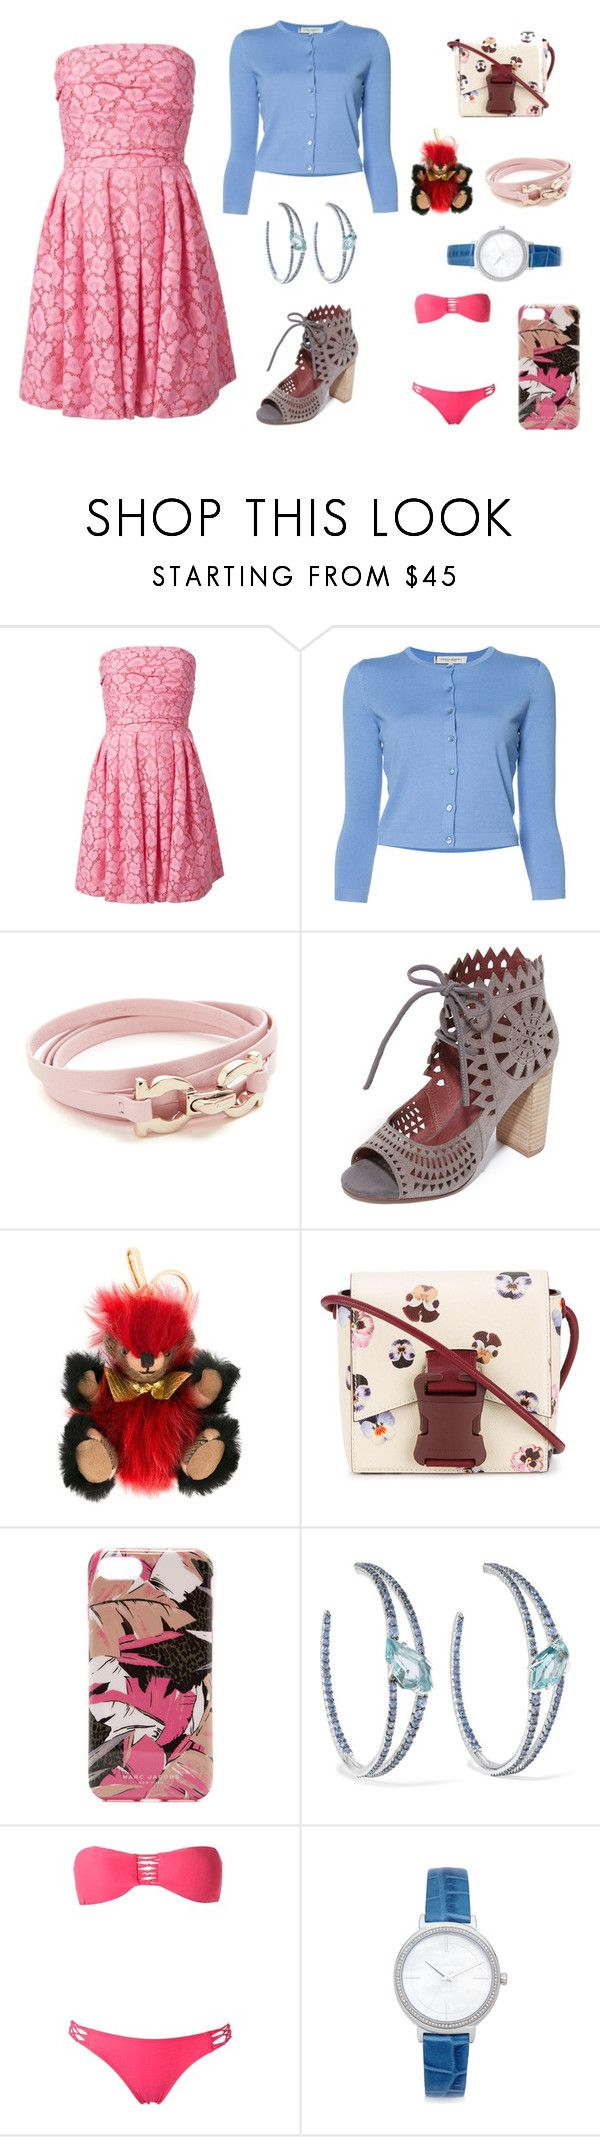 """""""Shoppers stop"""" by camry-brynn ❤ liked on Polyvore featuring Moschino Cheap & Chic, Carolina Herrera, Salvatore Ferragamo, Jeffrey Campbell, Burberry, Christopher Kane, Marc Jacobs, Alexis Bittar, SUB and Michael Kors"""